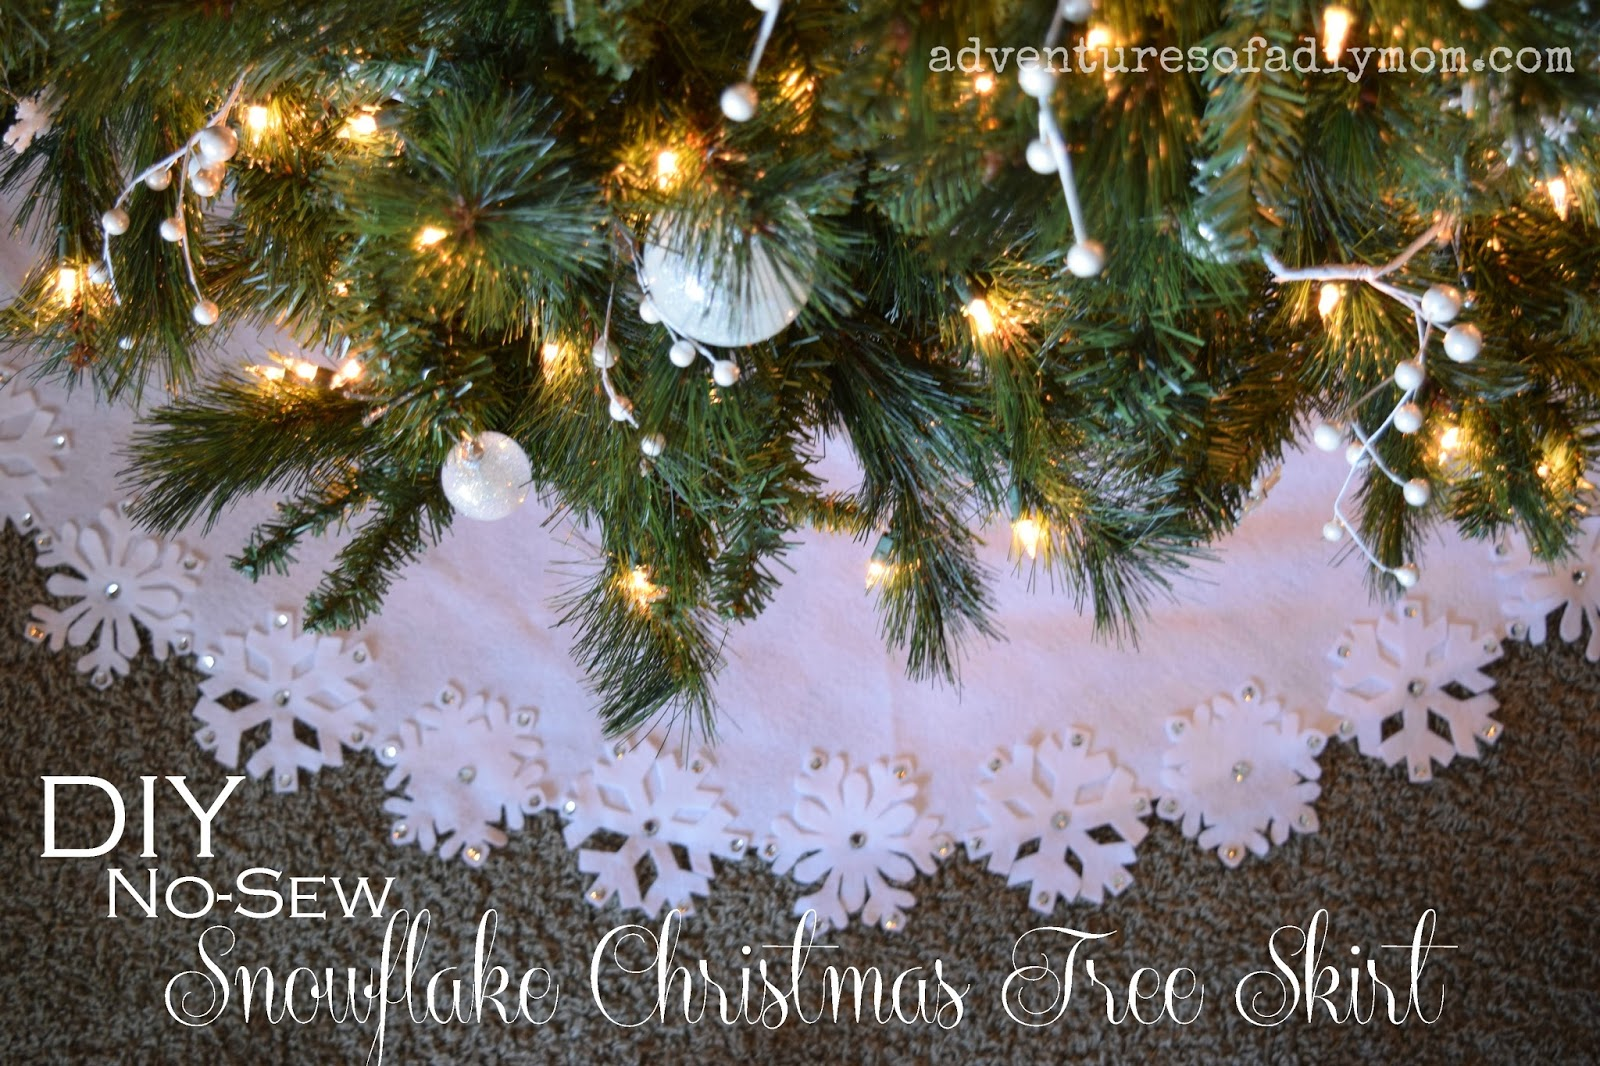 DIY No-Sew Christmas Tree Skirt with Felt Snowflakes - Adventures ...